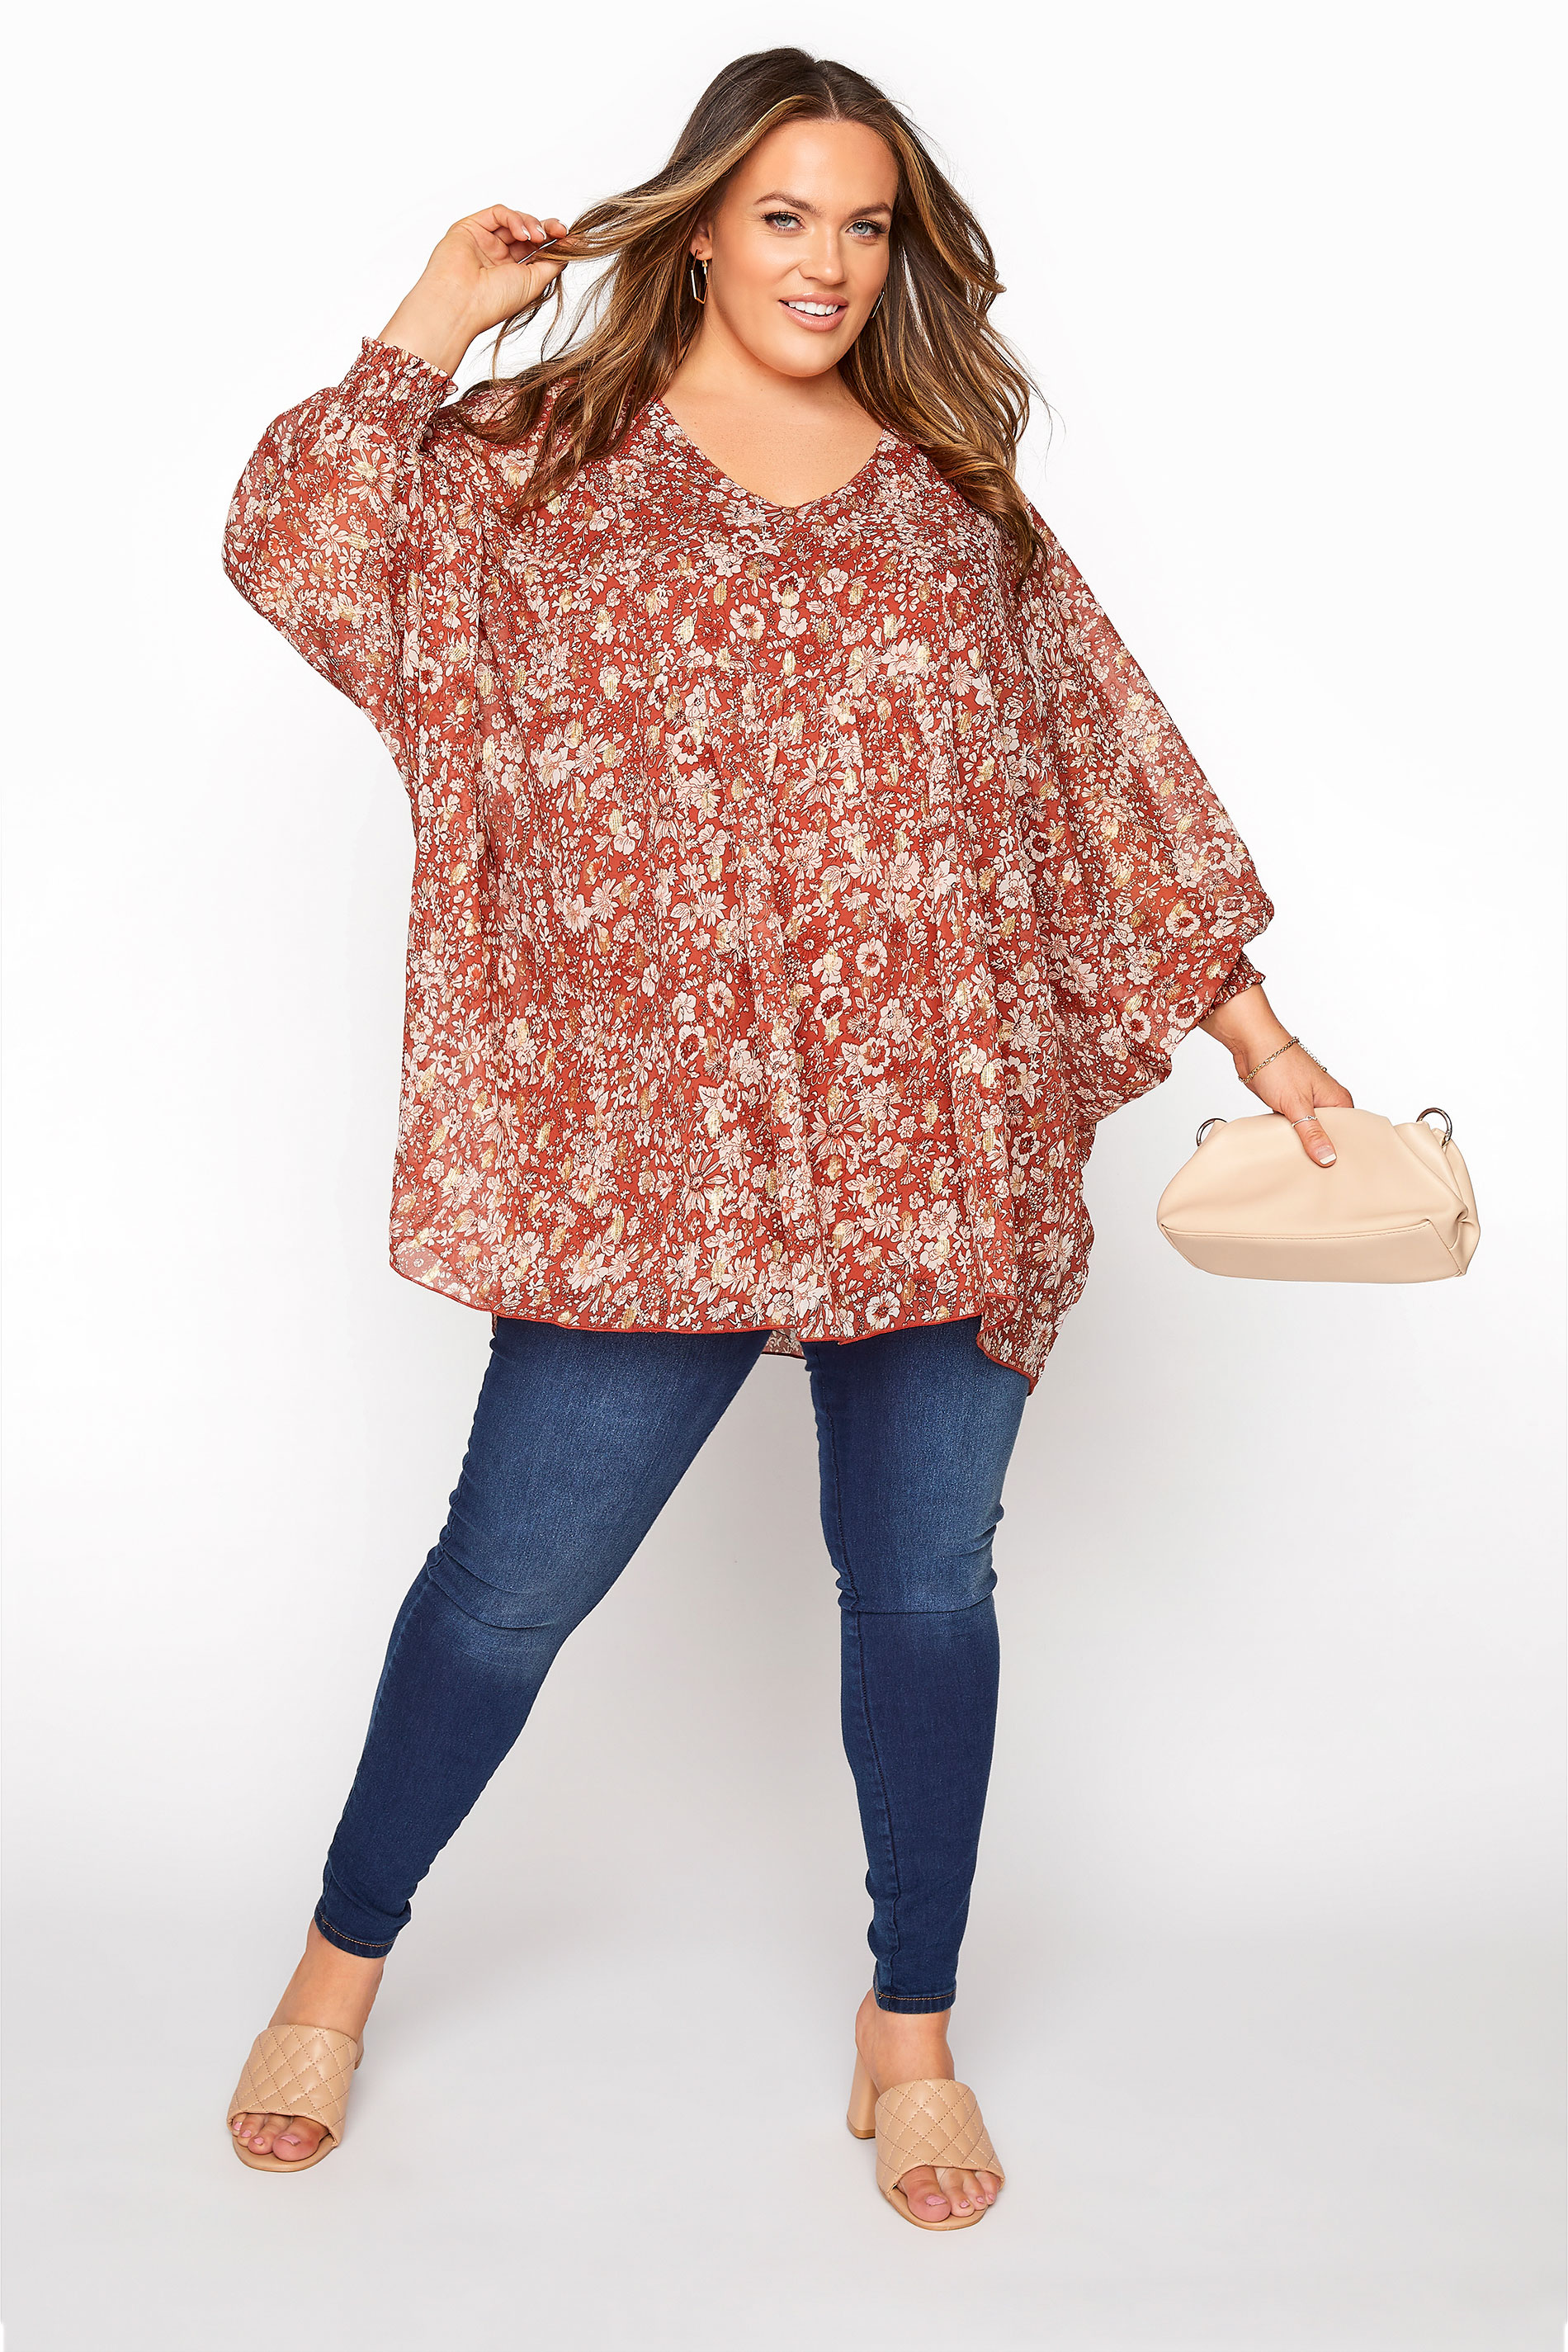 YOURS LONDON Rust Floral Batwing Sleeve Blouse_B.jpg